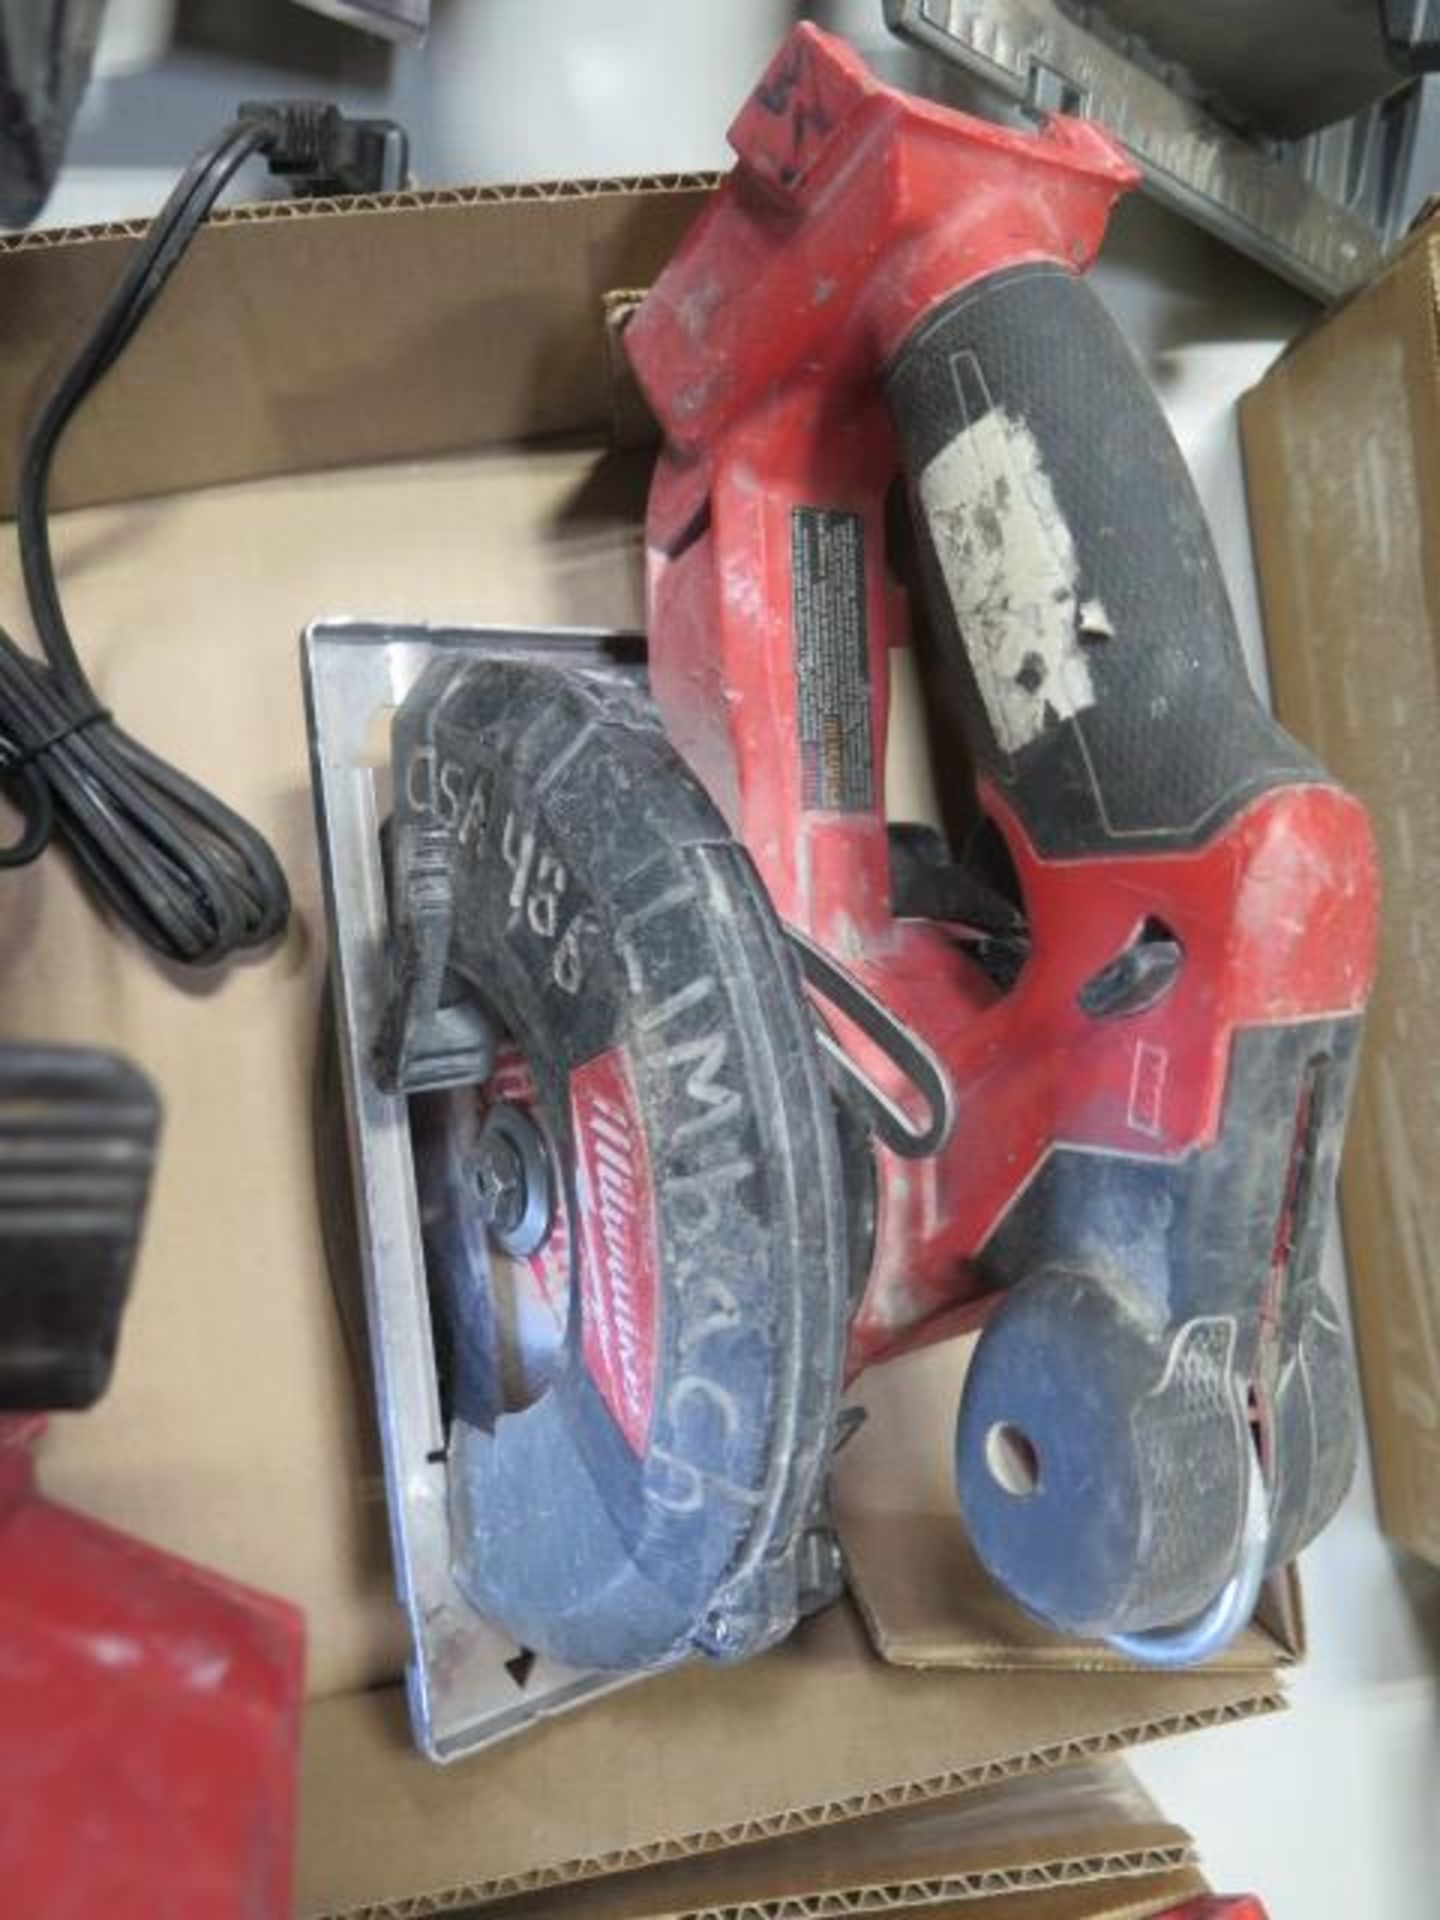 Milwaukee 18 Volt Circular Saws (3) (SOLD AS-IS - NO WARRANTY) - Image 4 of 5